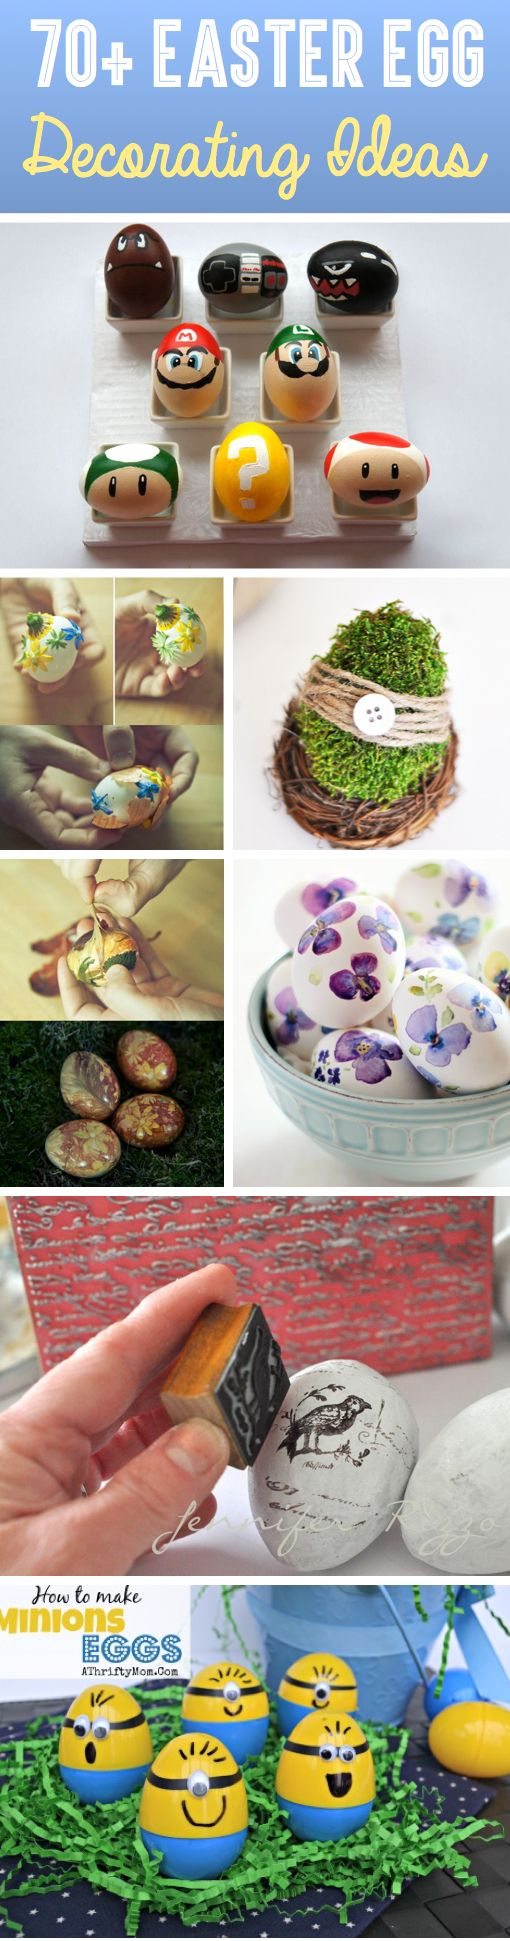 70+ Easter Egg Decorating Ideas For The Artist Hidden Inside You!